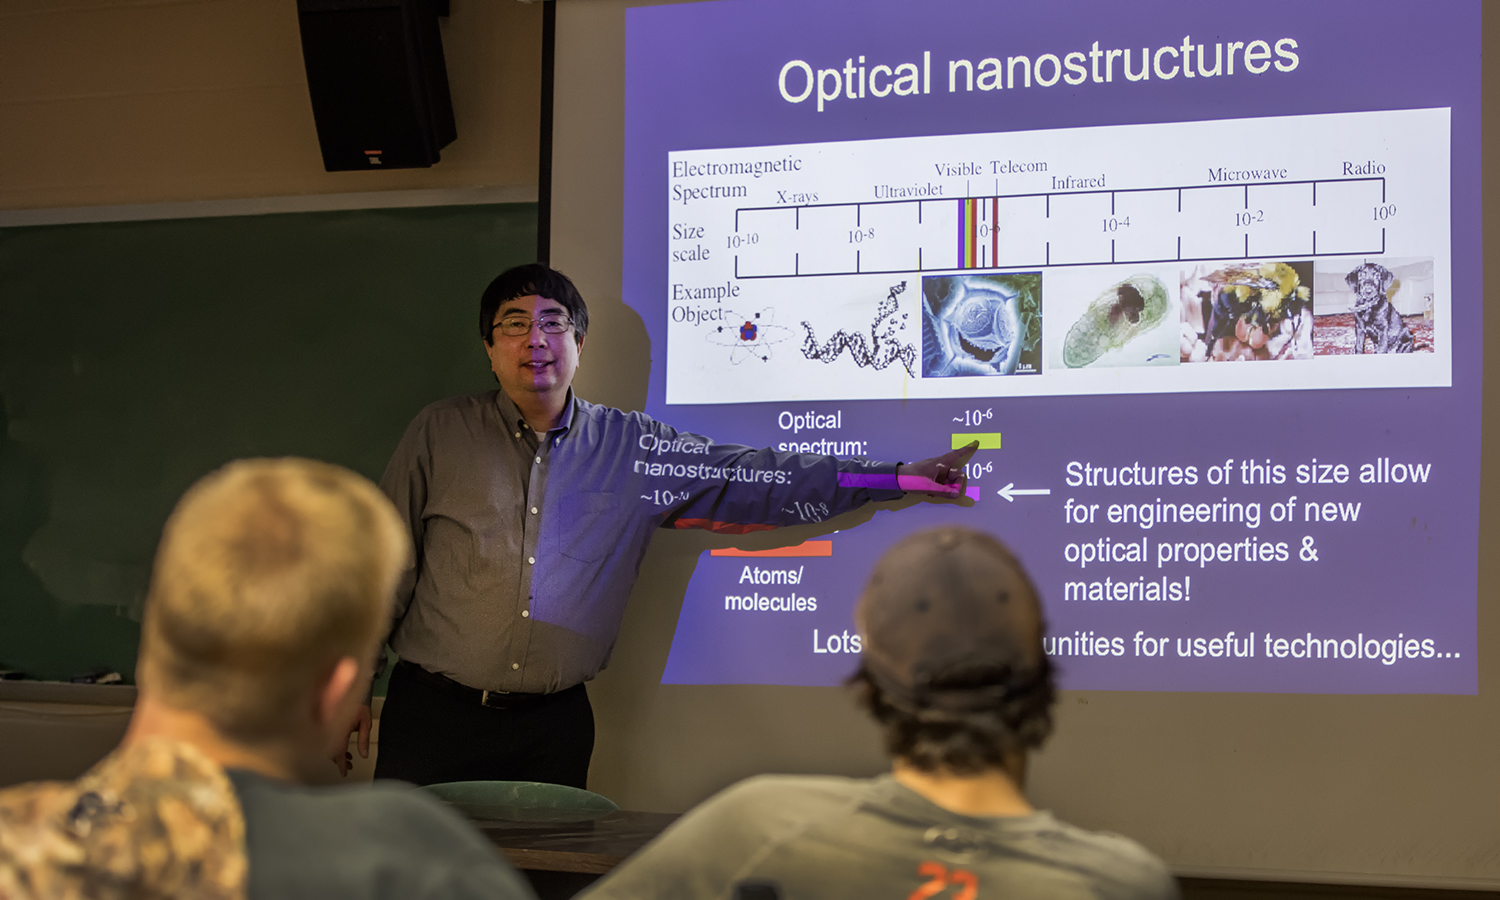 """Professor of Electrical and Computer Engineering at Montana State University Dr. Wataru Nakagawa highlights a new NSF Research Experience for Undergraduates titled, """"REU Site: Observing our world with light and sound"""". The research activities are highly interdisciplinary, and Dr. Nakagawa's research group focuses on the design, fabrication, characterizations and applications of novel optical devices based on nano-structures in silicon and other materials."""